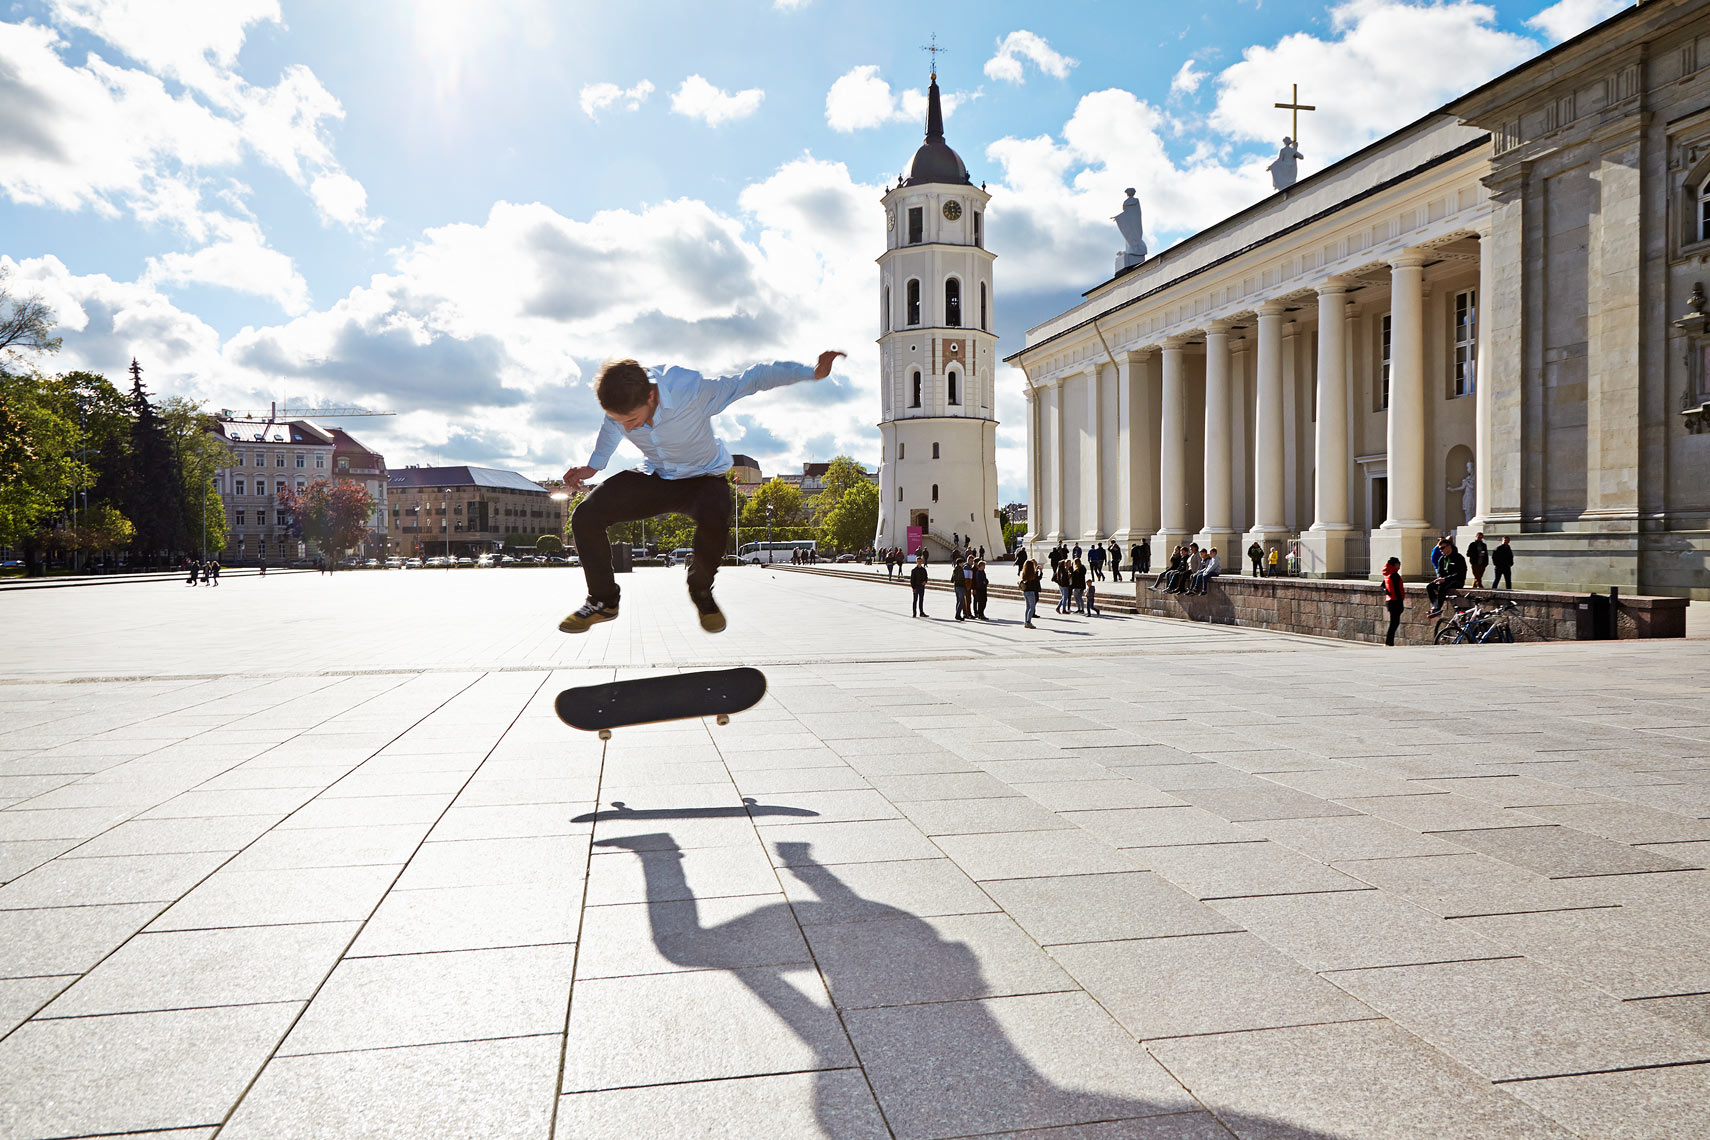 Skateboarder by cathedral